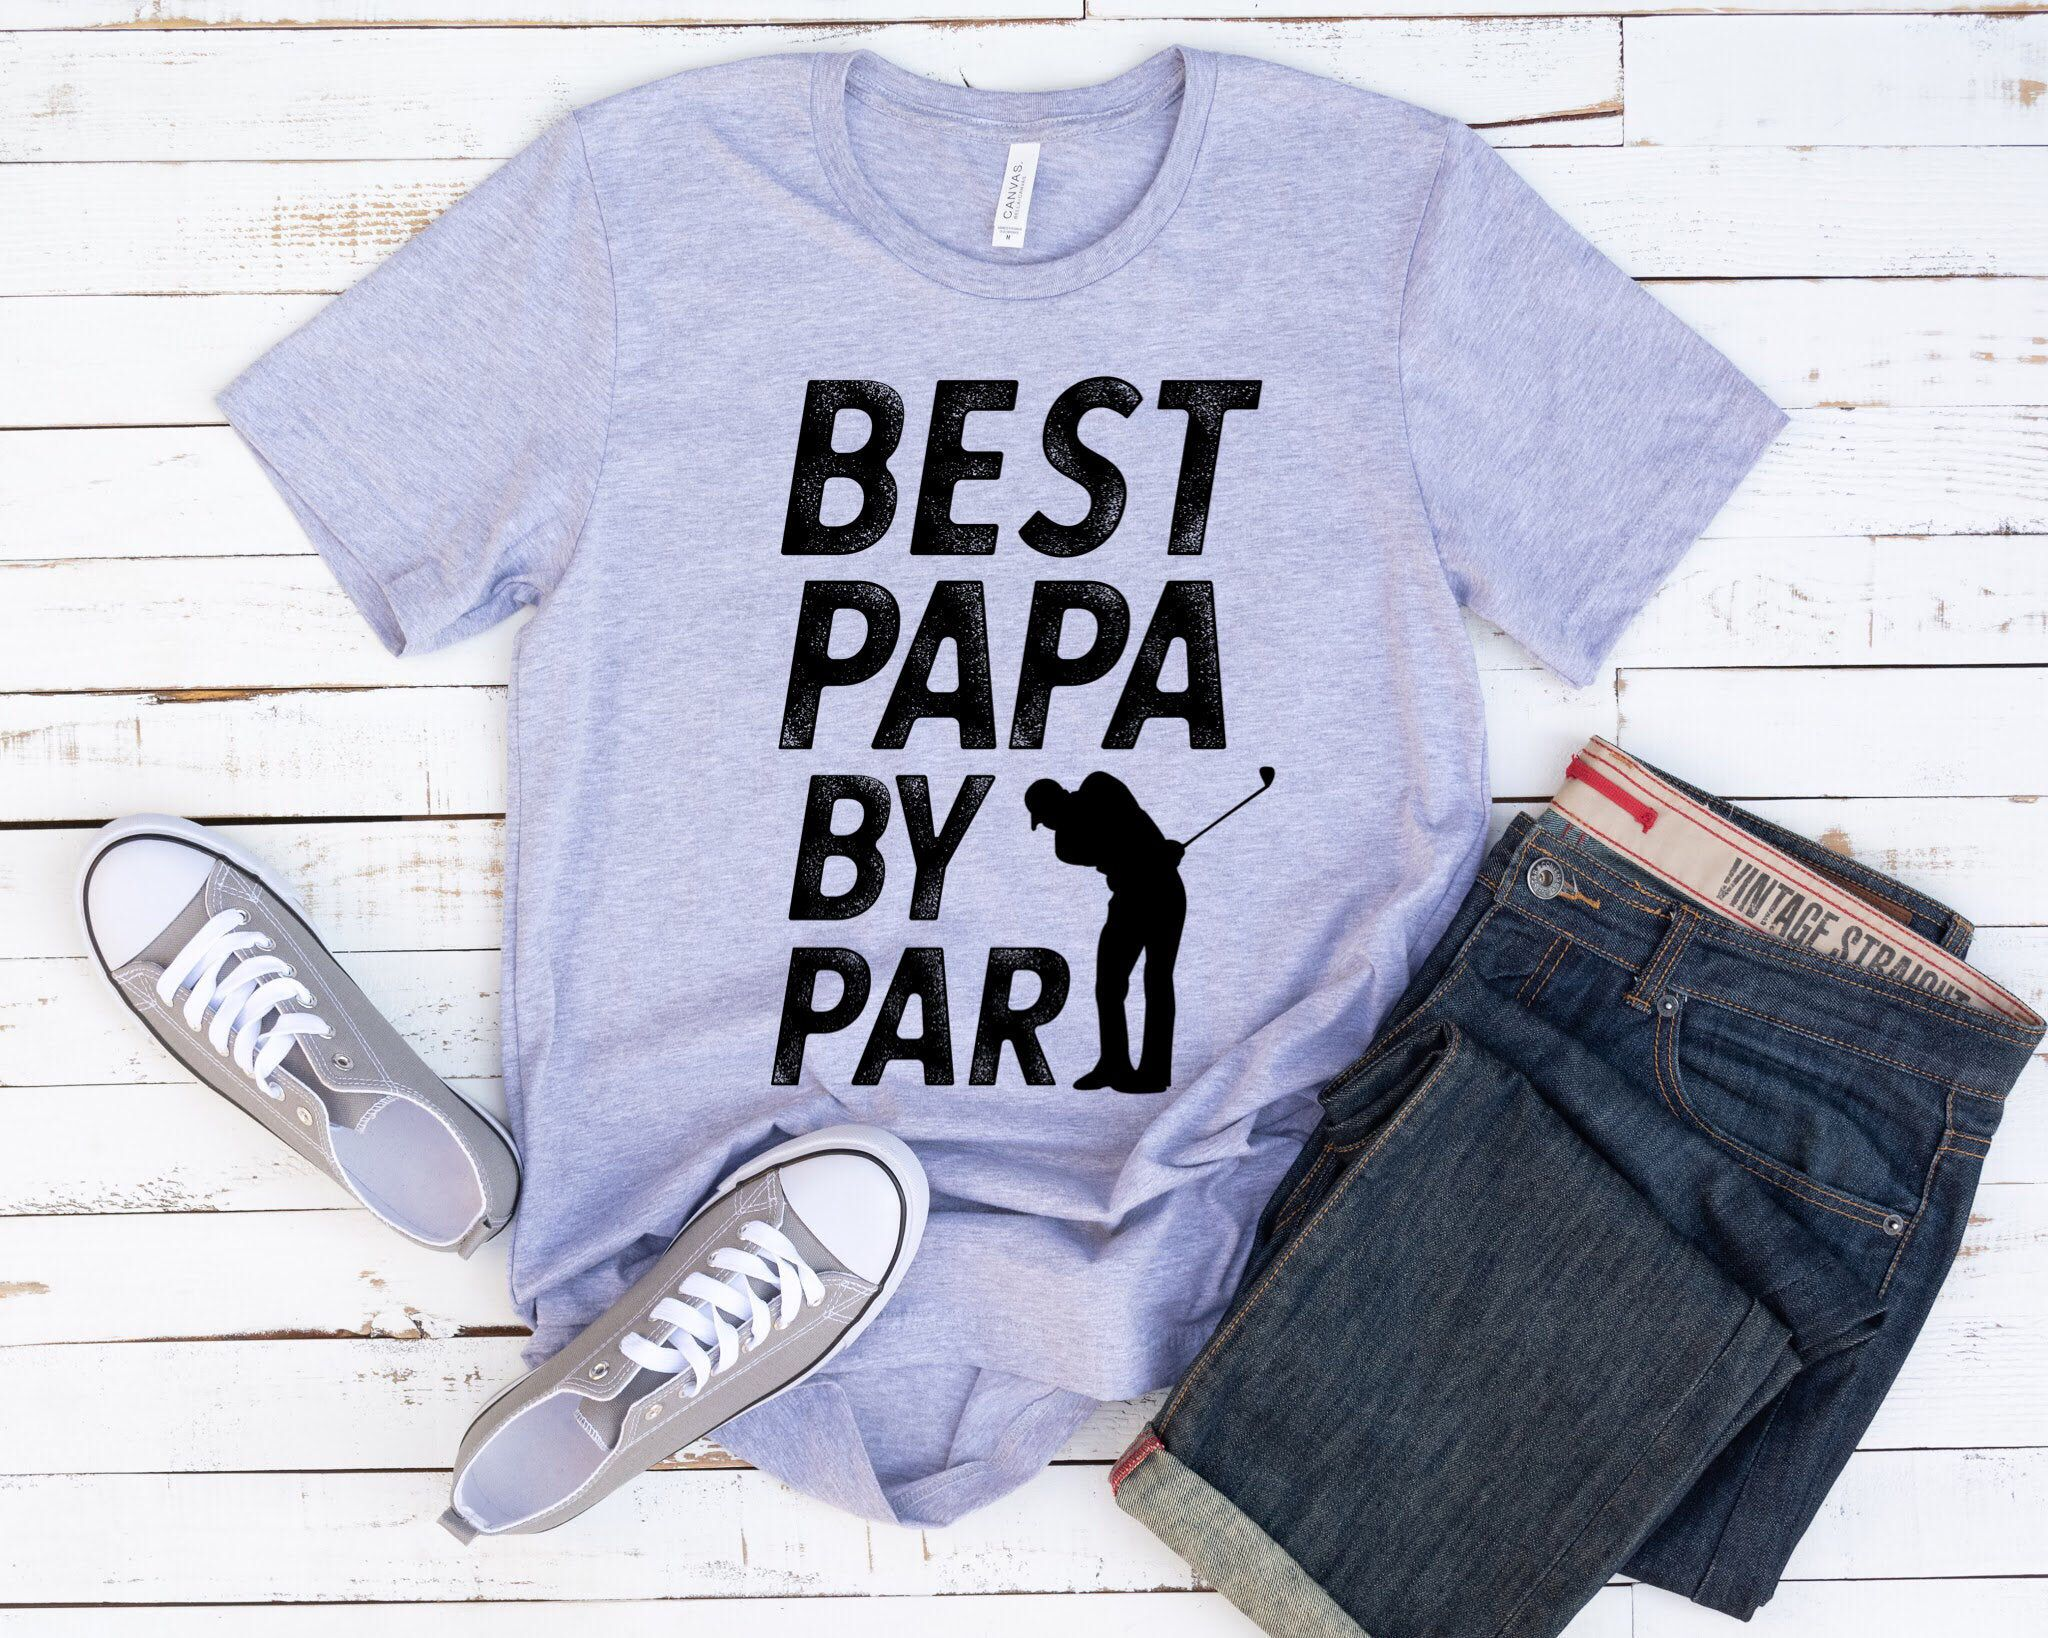 Best papa by par shirt golf gift mens fathers day golfing